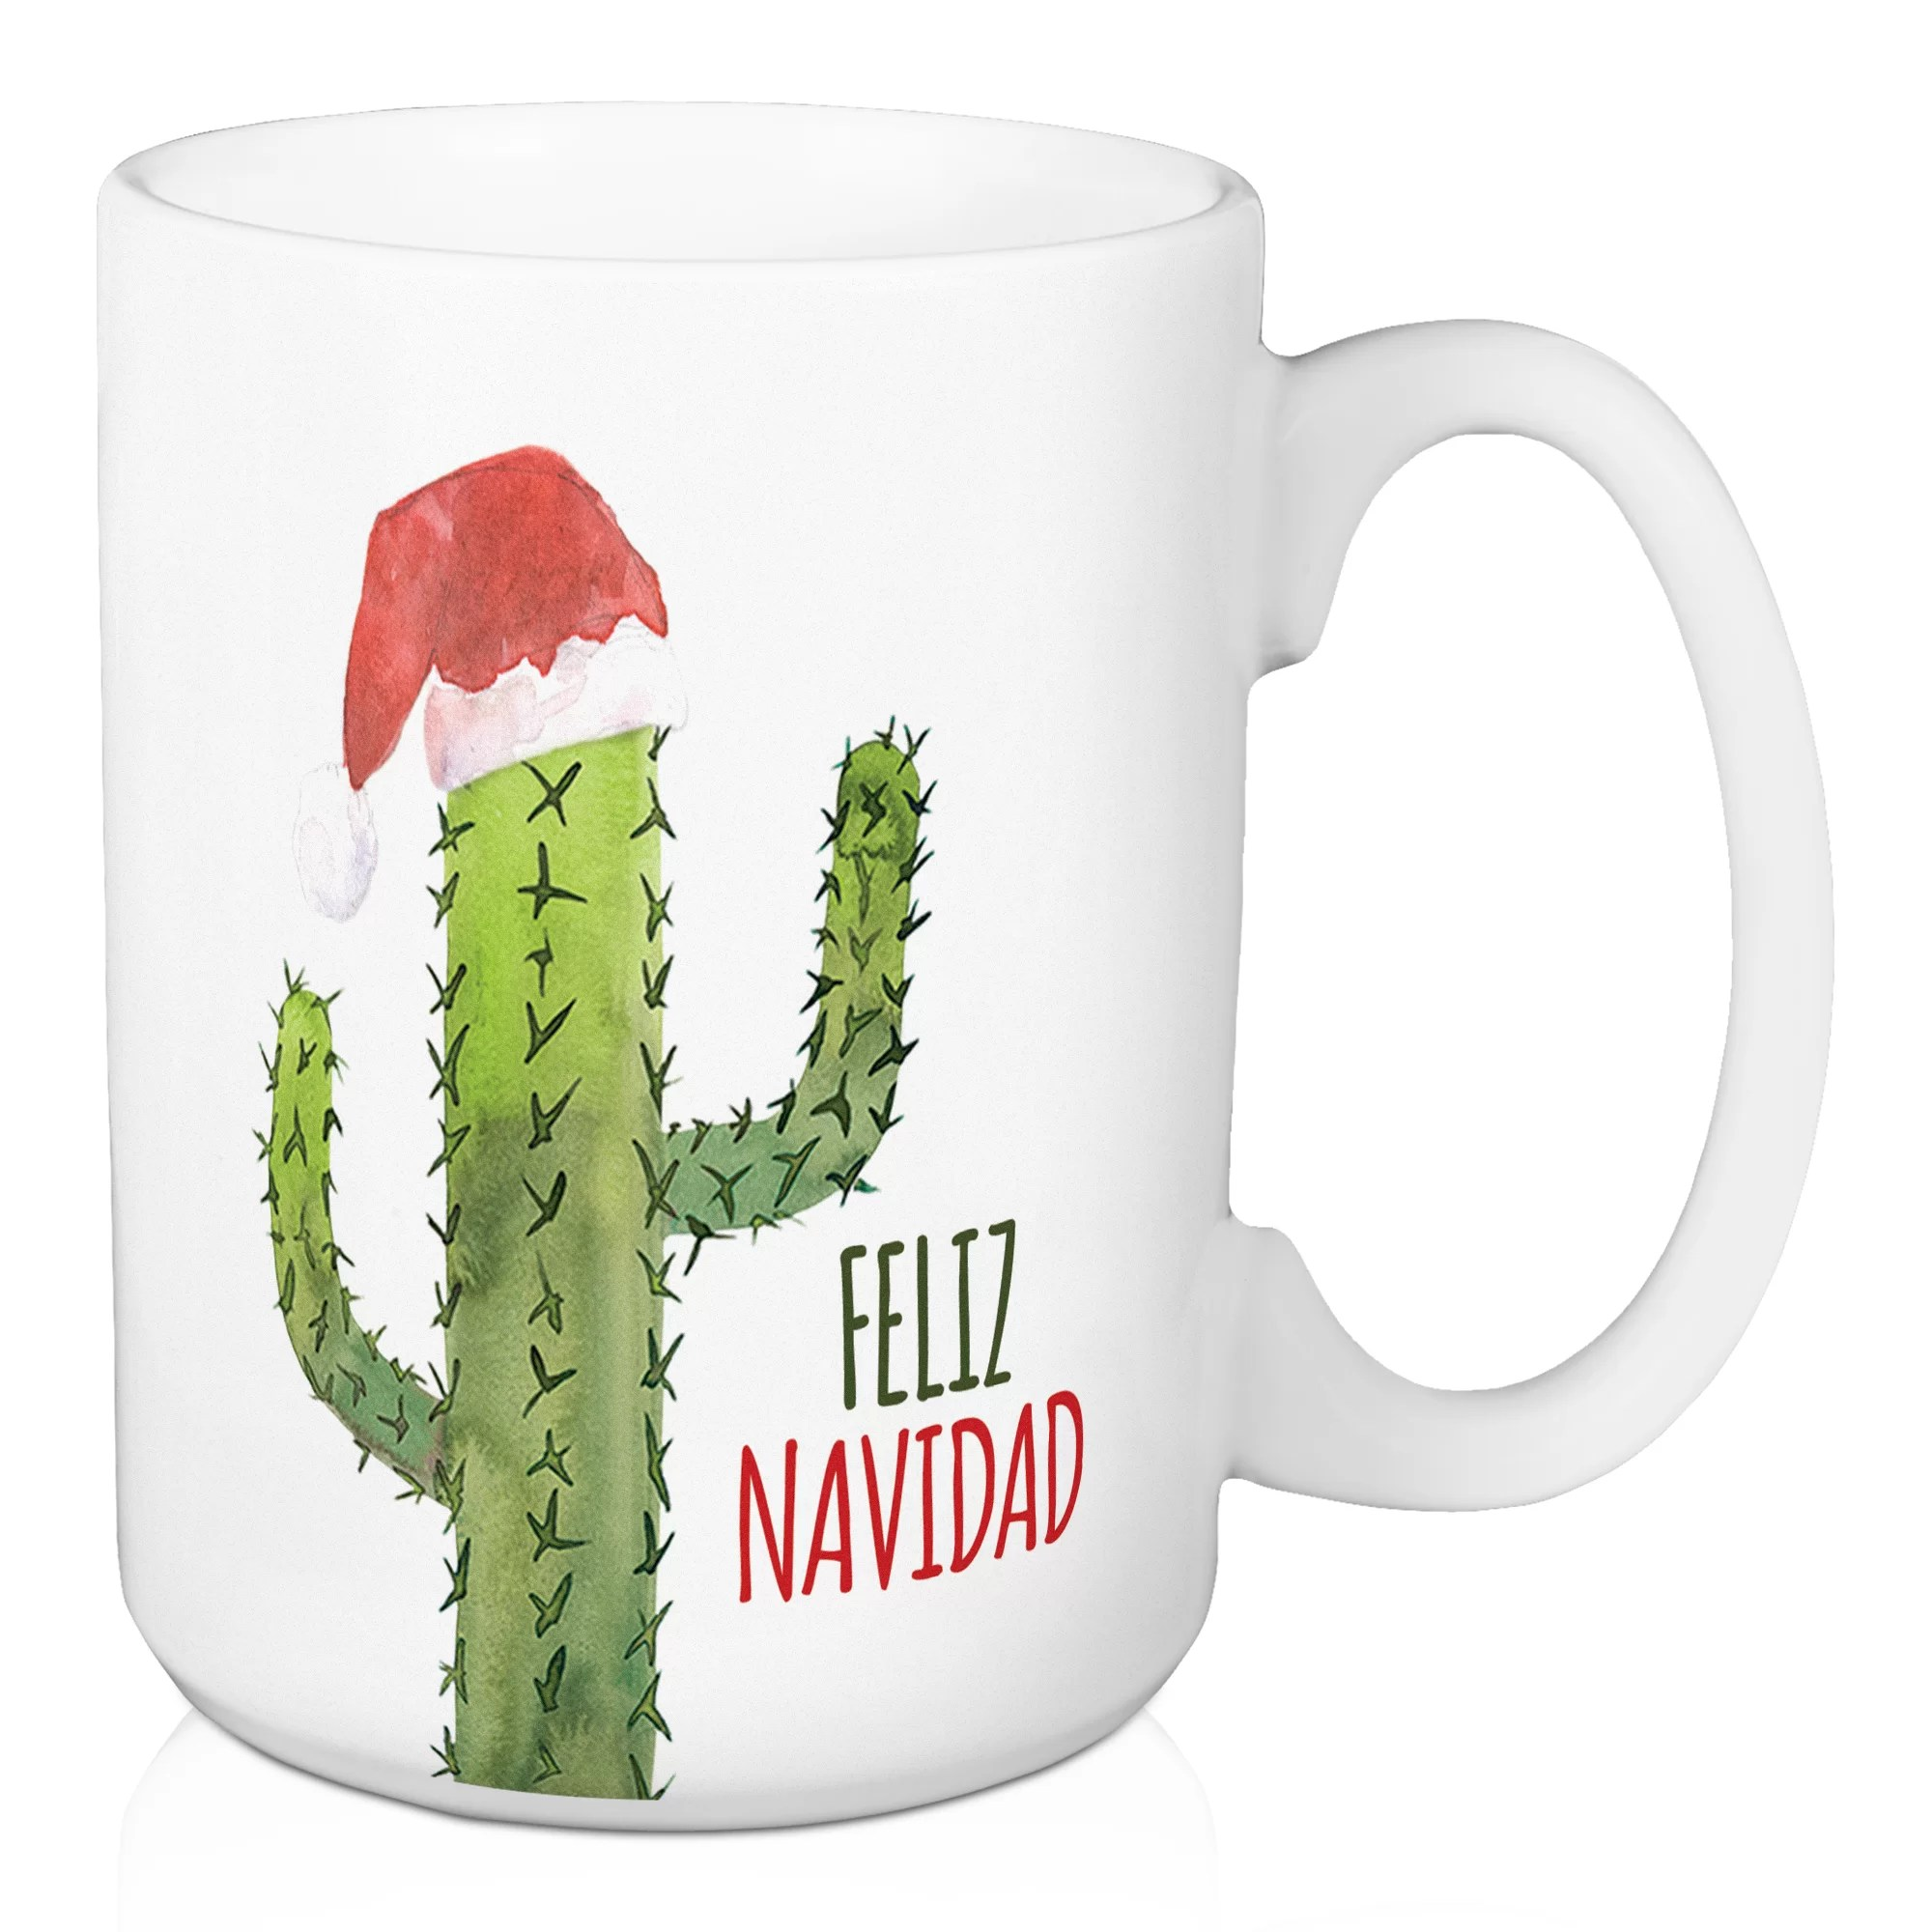 Mug A Cafe The Holiday Aisle Feliz Navidad Cactus Coffee Mug Wayfair Ca